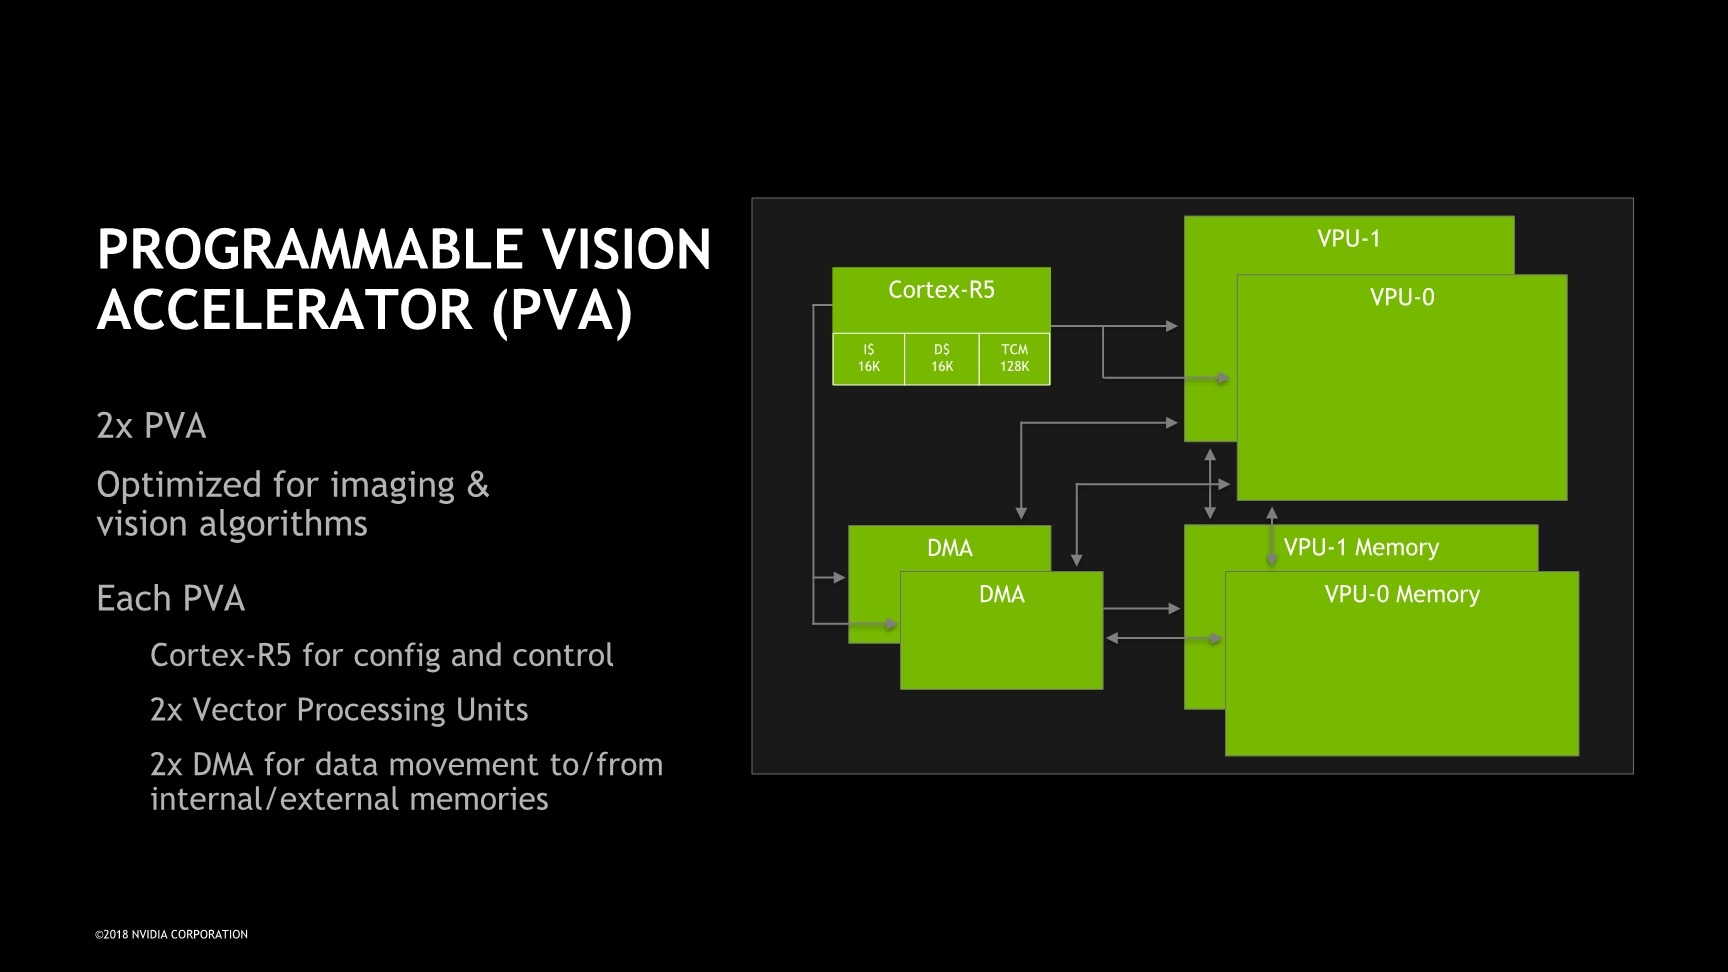 hight resolution of alongside the dla the programmable vision accelerator is again a key component of the xavier system that allows it focus on vision and in particular